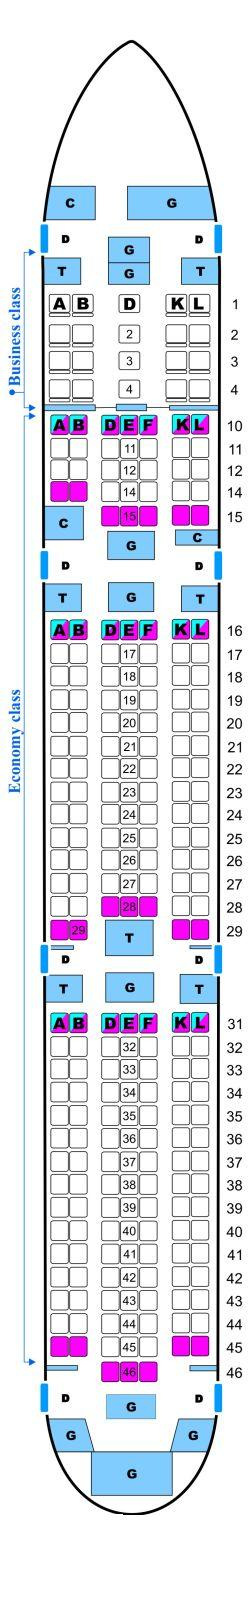 Seat map for Continental Airlines Boeing B767 400ER